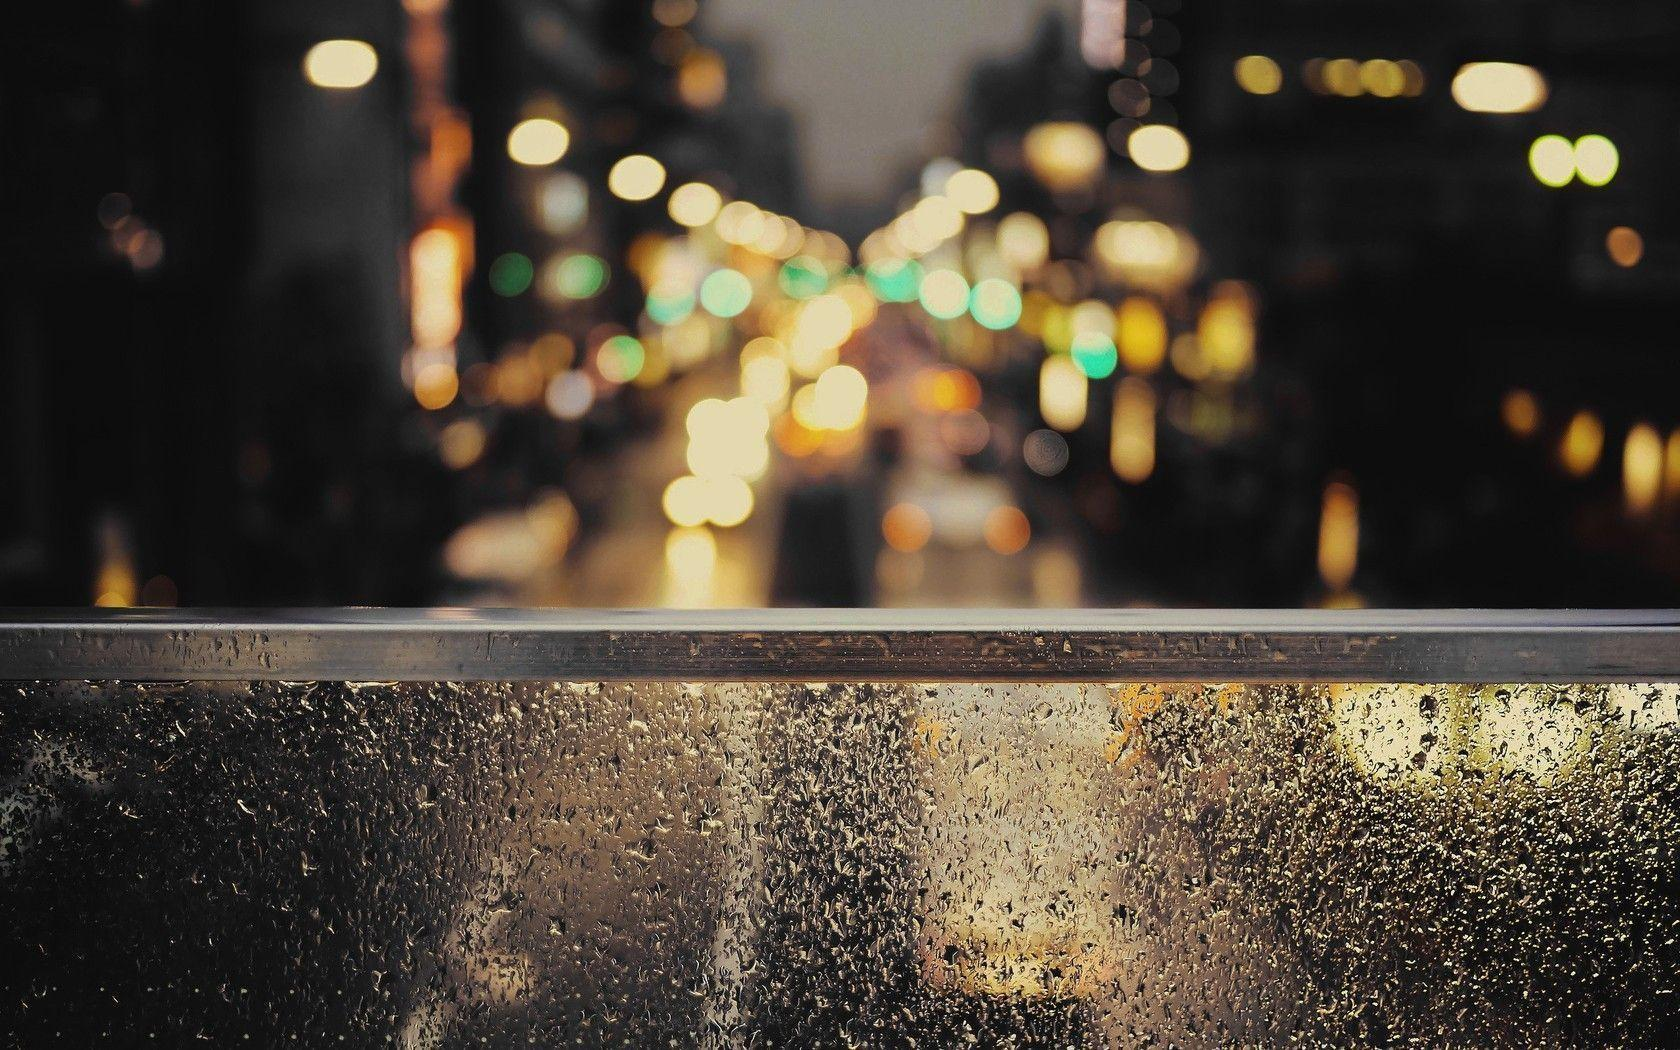 City Lights Beyond The Rainy Window Wallpaper